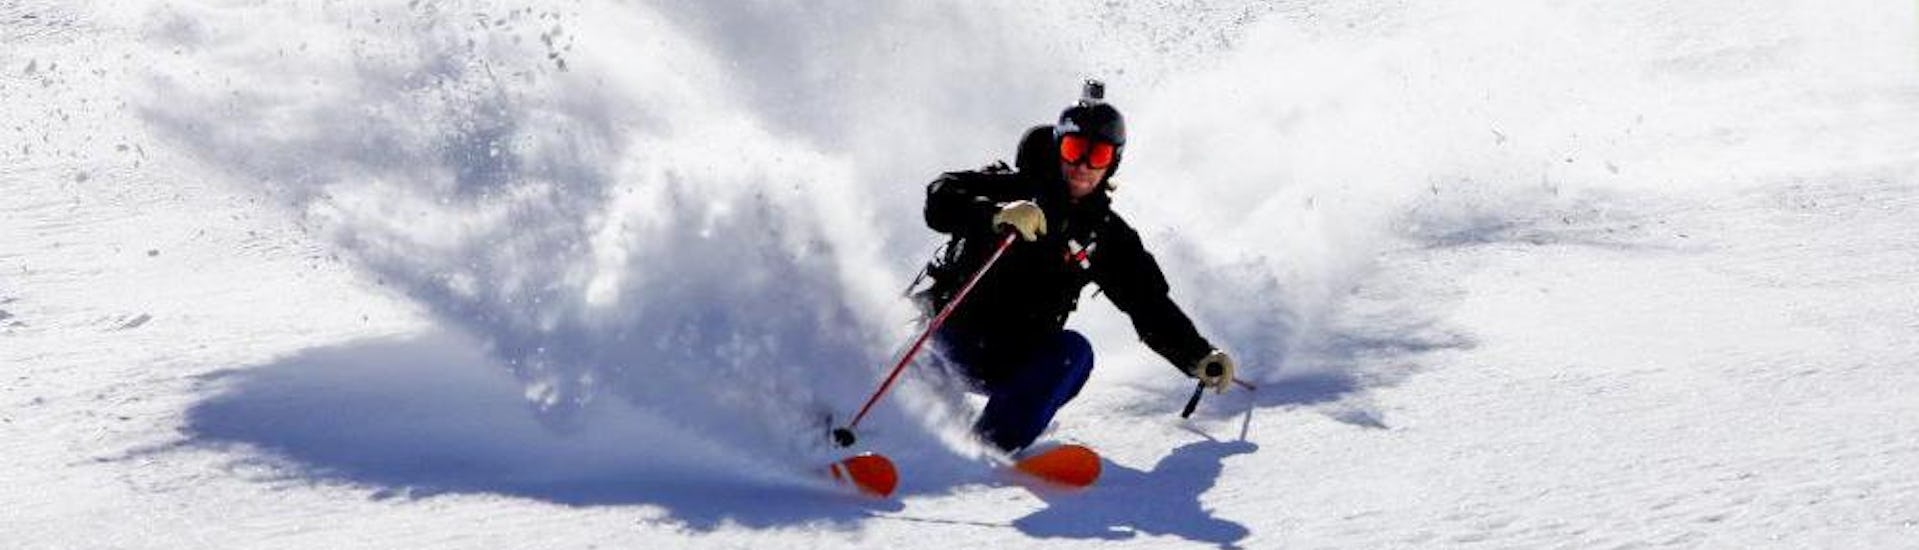 Freeride - Discover the best snow